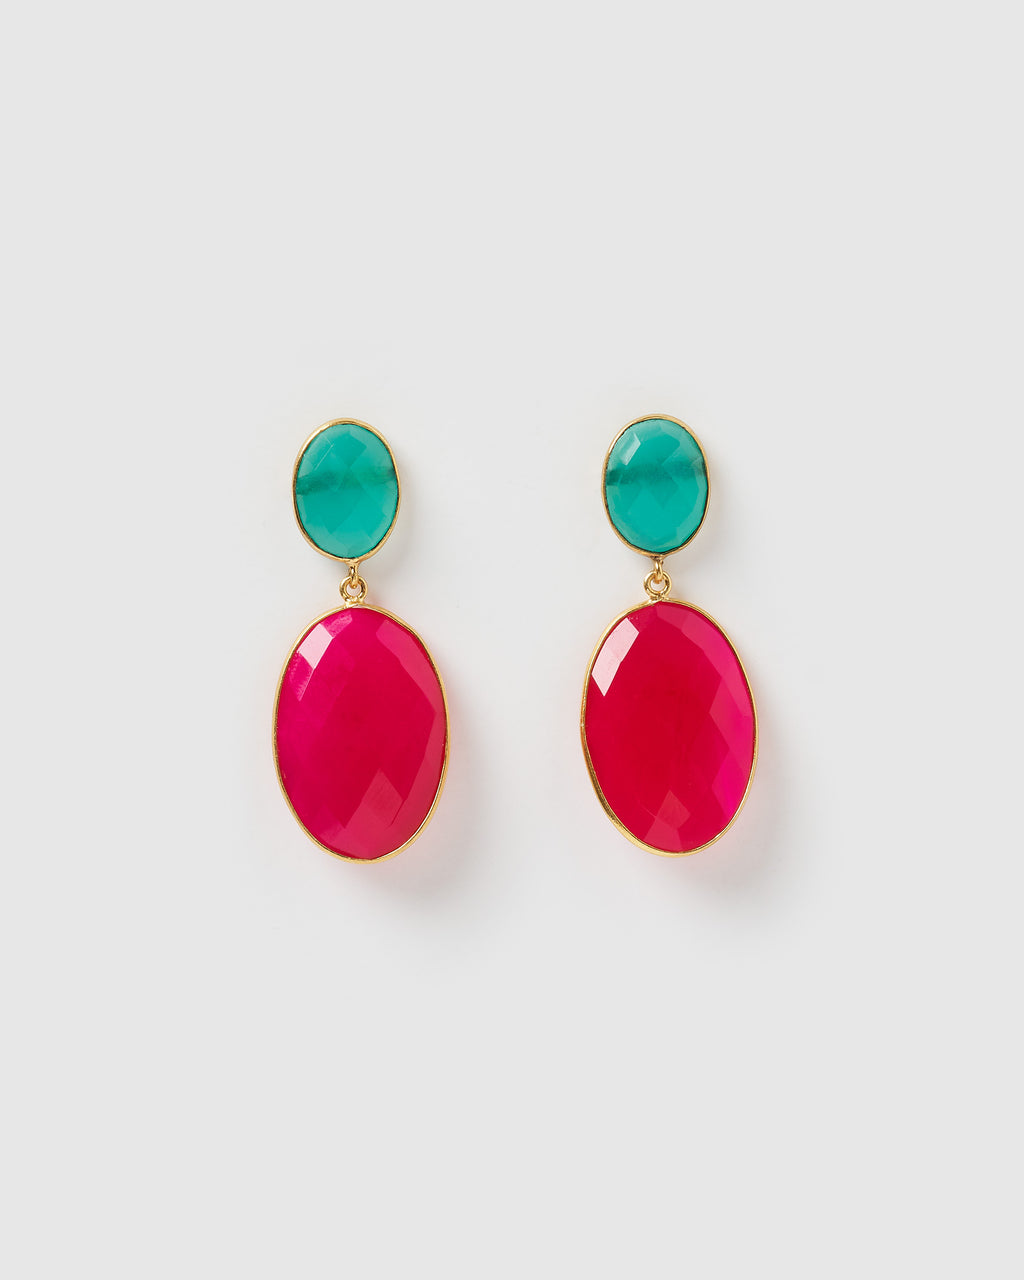 Izoa Divinity Earrings Turquoise Fuchsia Chalcedony